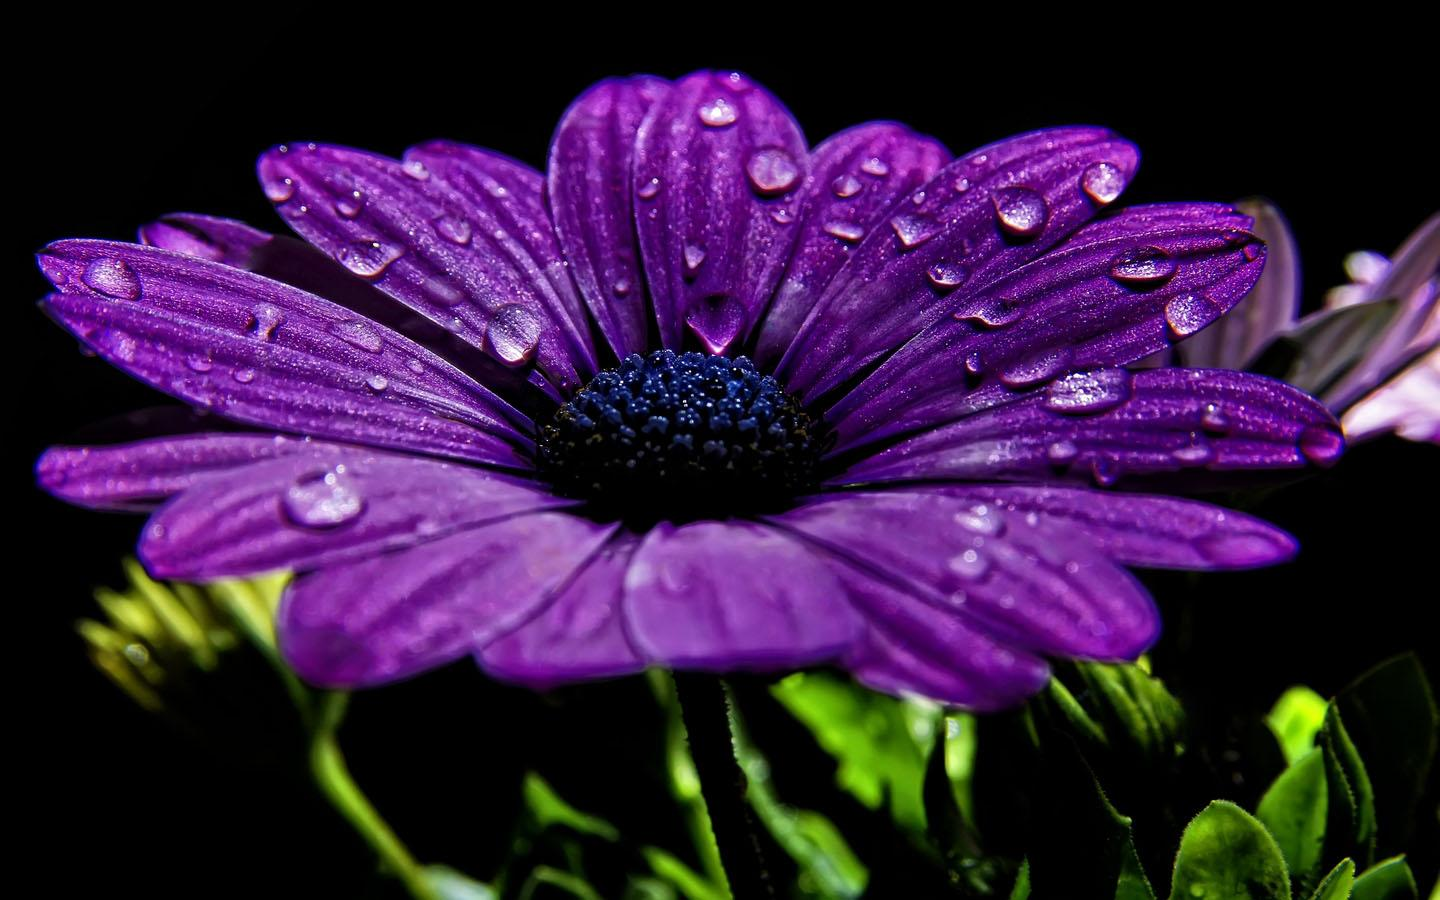 Purple flower wallpaper android apps on google play purple flower wallpaper screenshot voltagebd Gallery